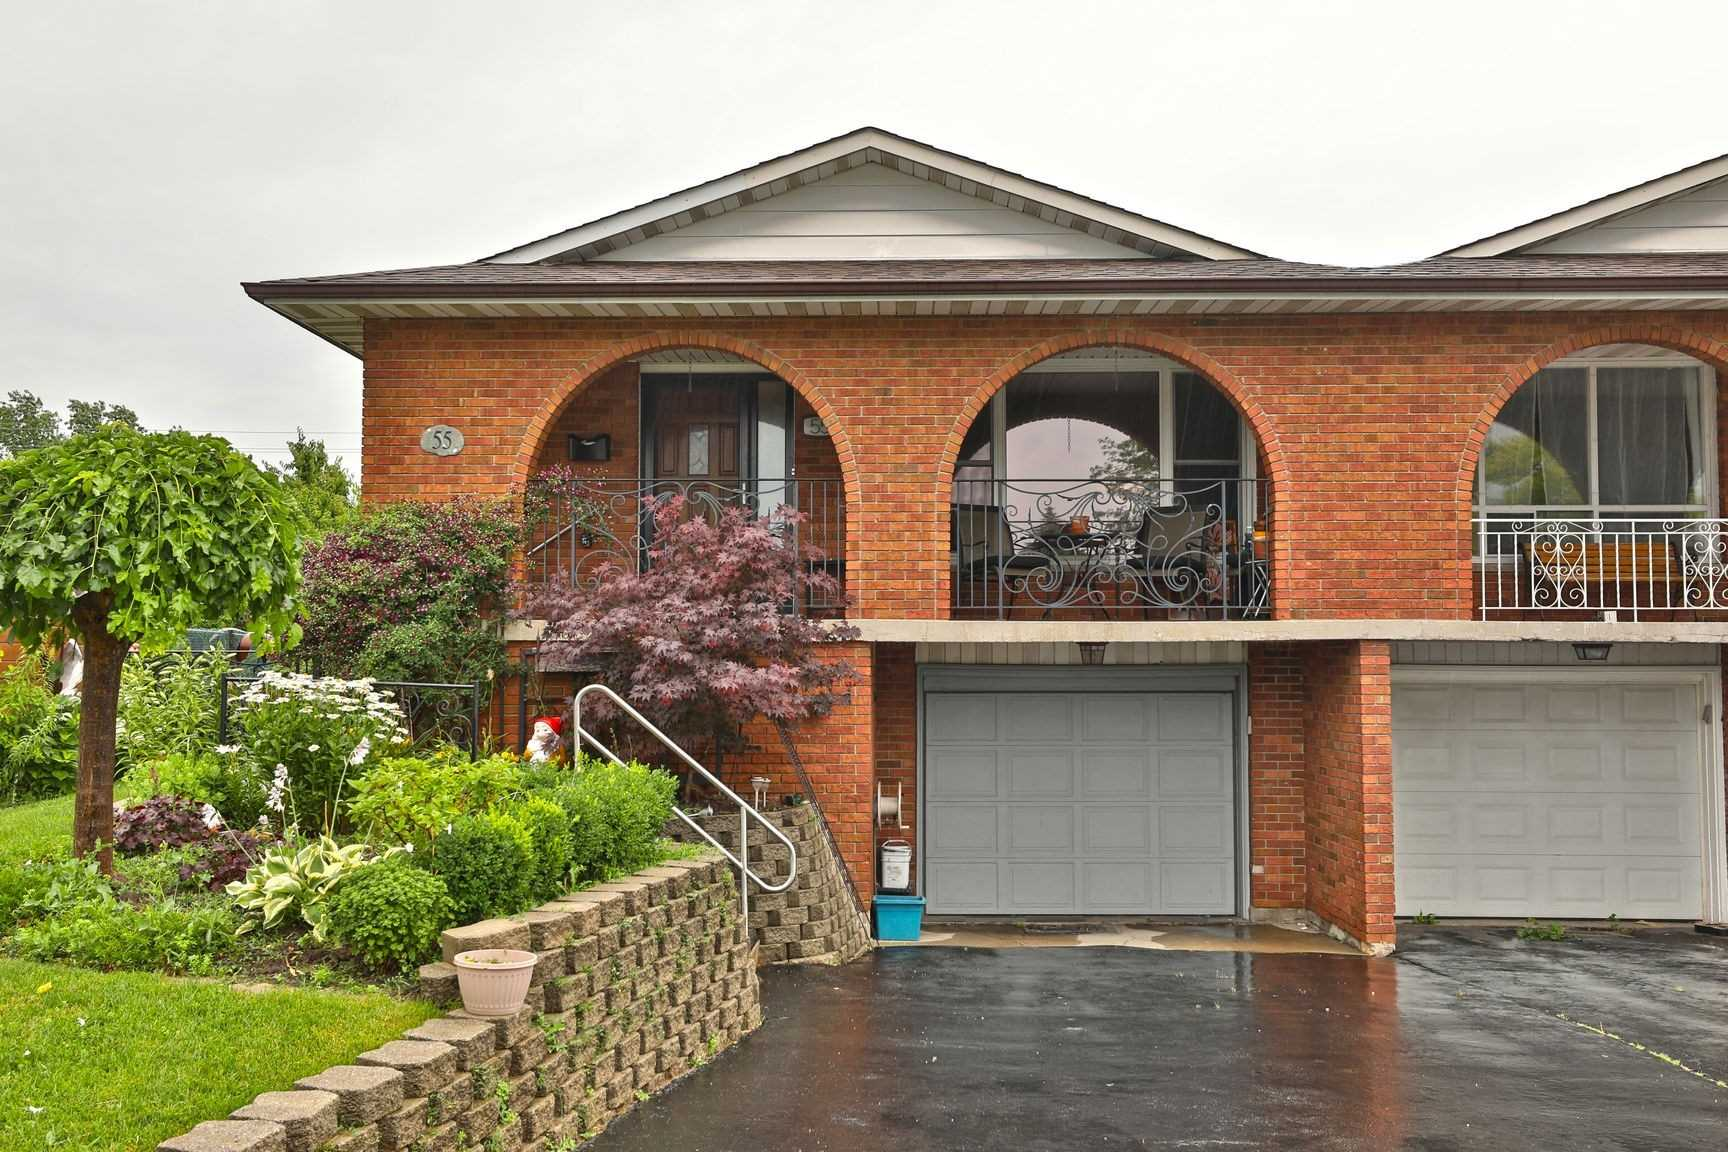 55 Eastbury Is Now On The Market And Is Available Immediately! Located In A Quiet, Situated, East-Hamilton Neighborhood - This Two Storey Bungalow Has Lots To Offer! The Main Floor Of The Home Opens Up Into A Spacious Living And Dining Area. The Property Then Opens Up To A Generously-Sized Eat-In Kitchen That Includes Stainless Steel Appliances And A Dishwasher.